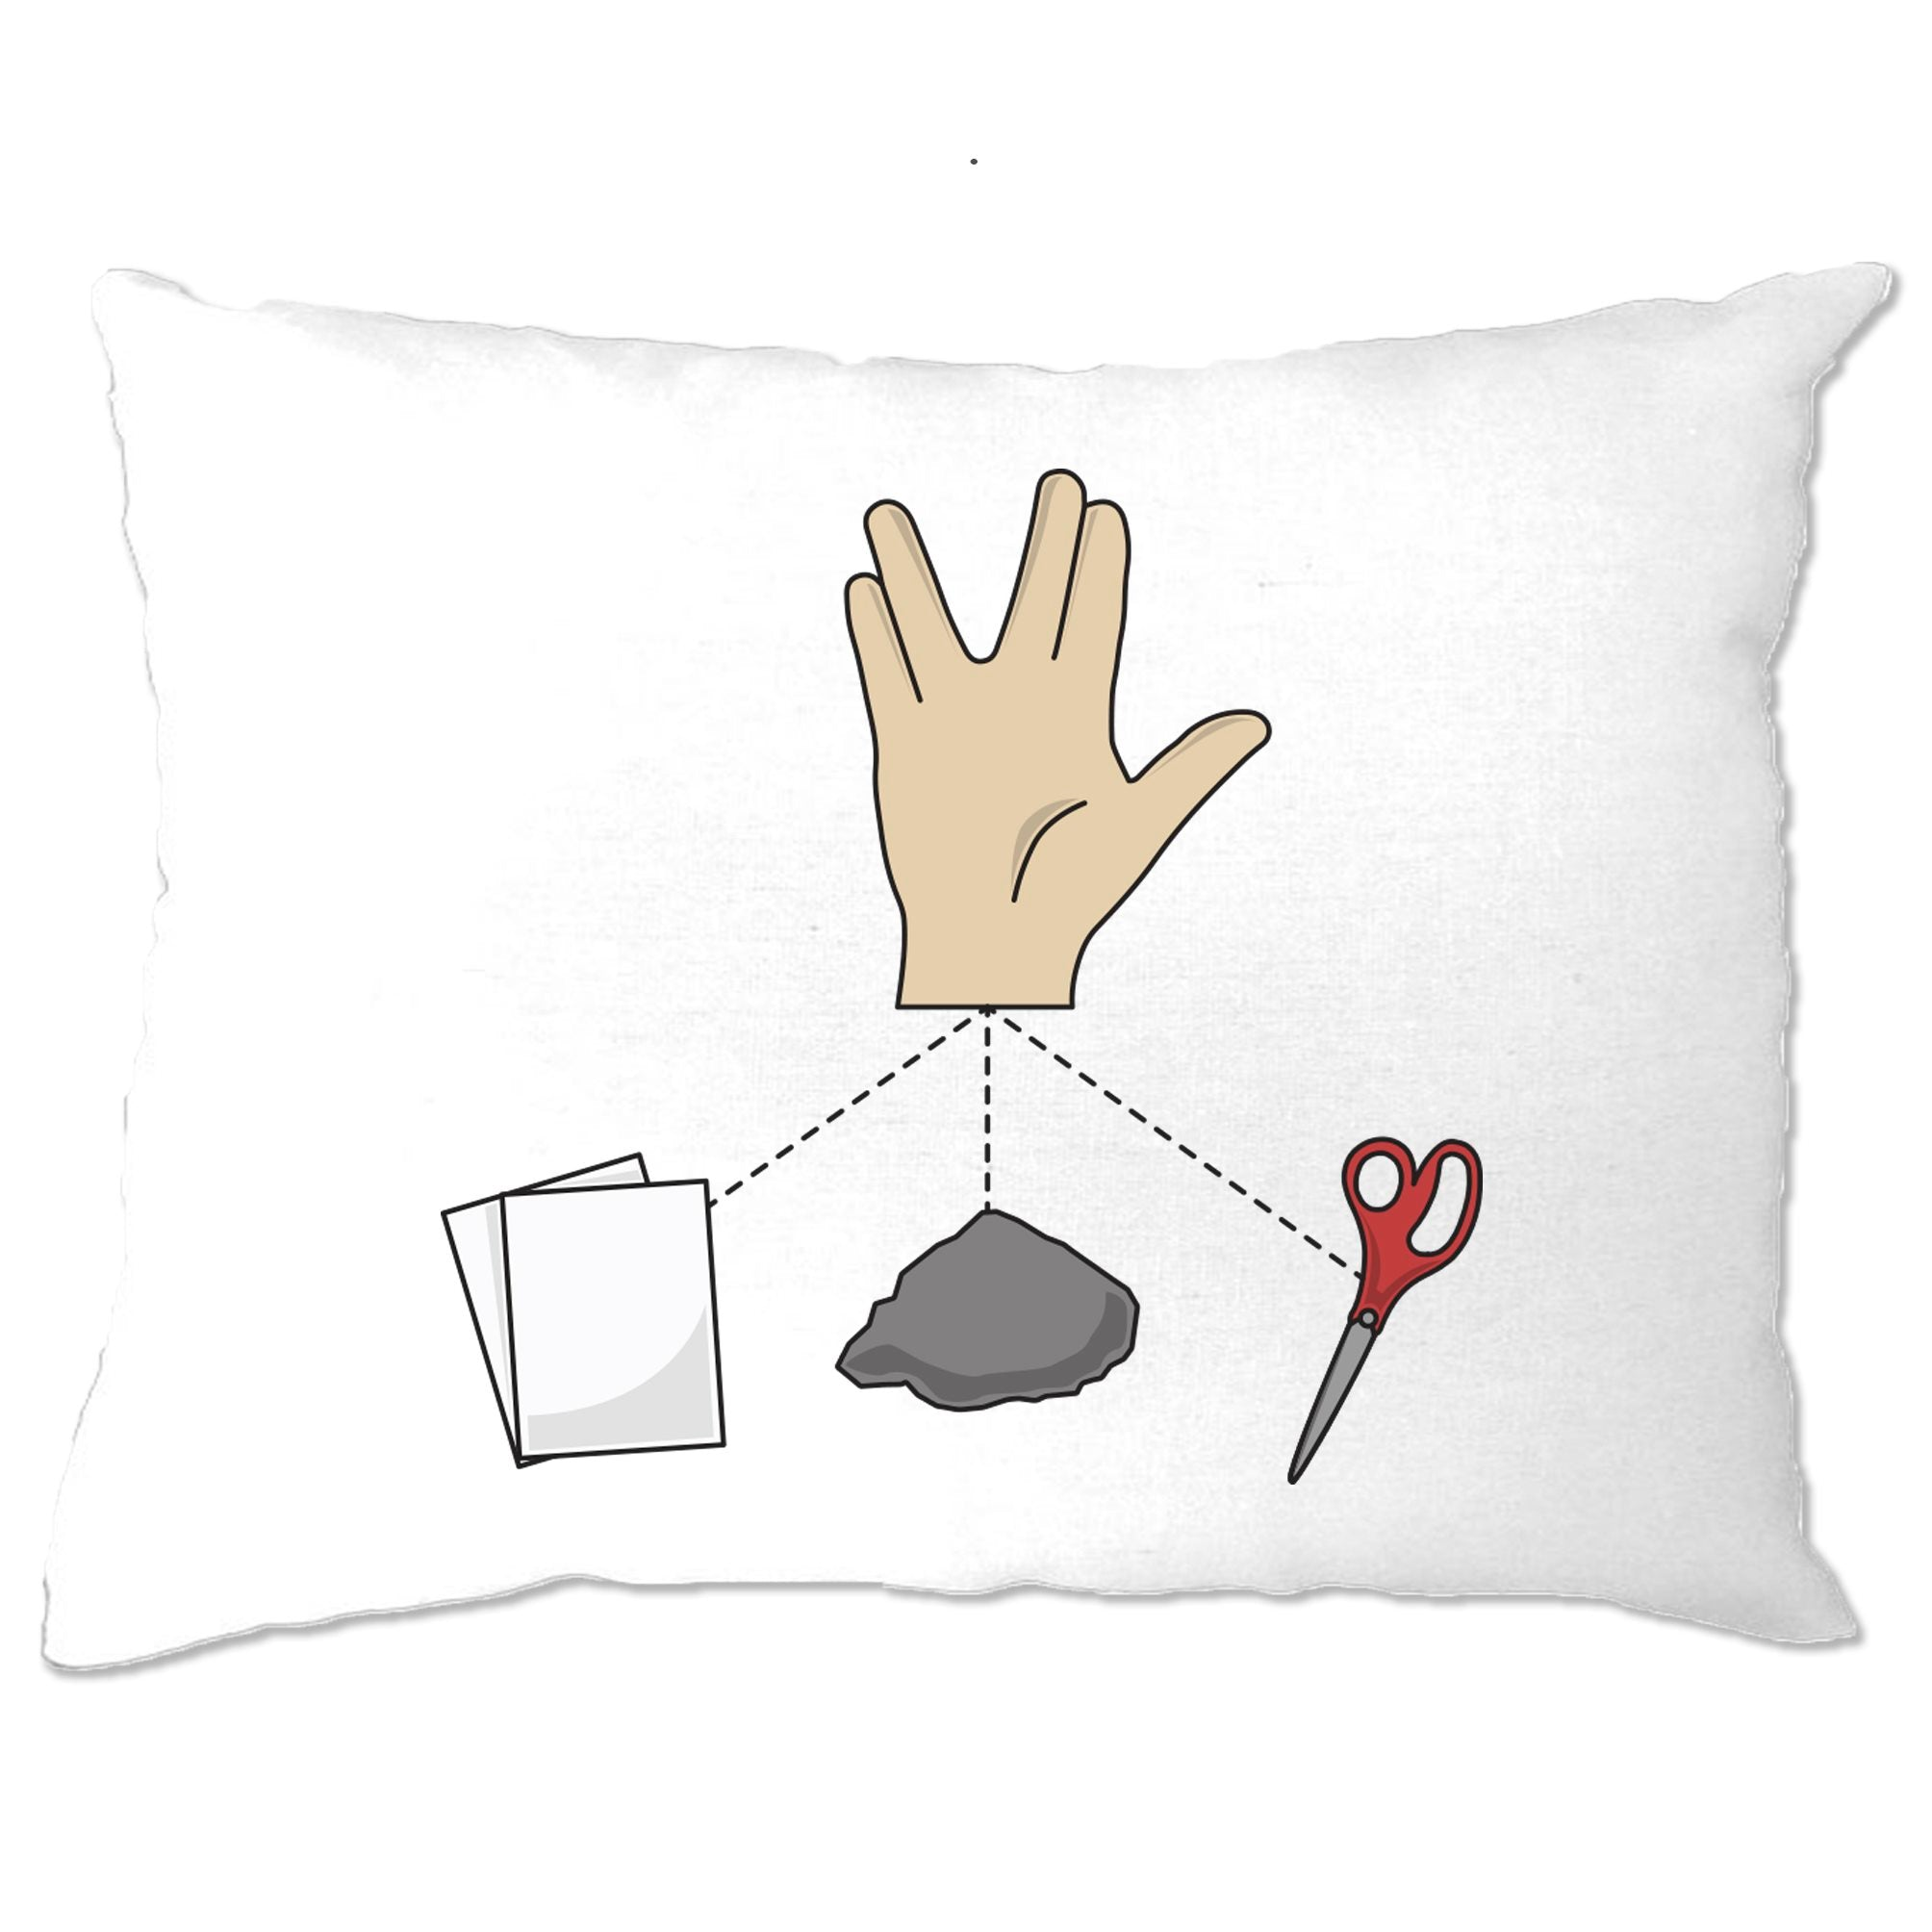 Nerdy Pillow Case Rock, Paper, Scissors and Spock Game